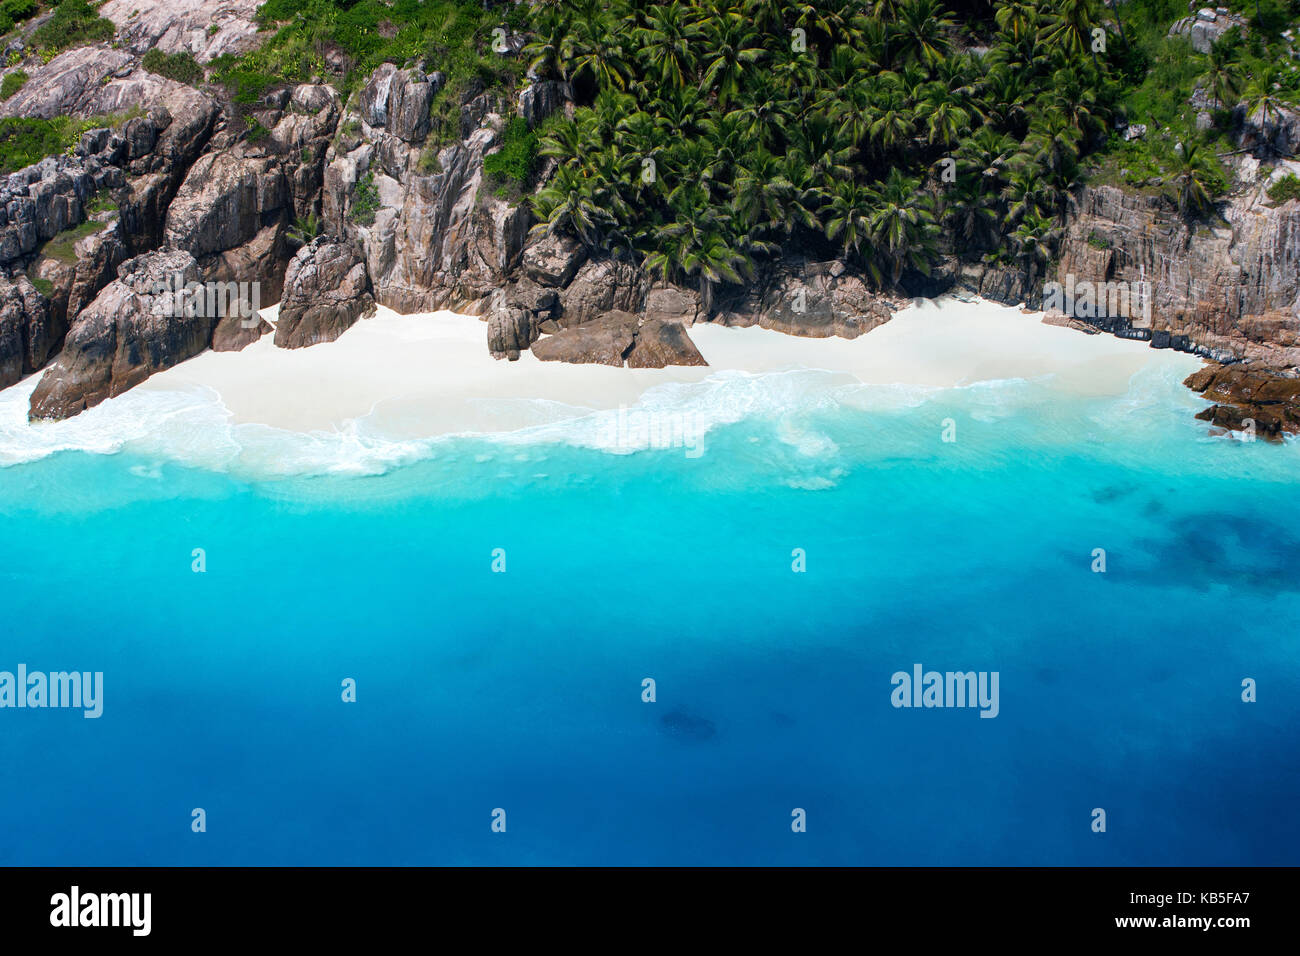 Aerial view of tropical beach, Seychelles, Indian Ocean, Africa - Stock Image